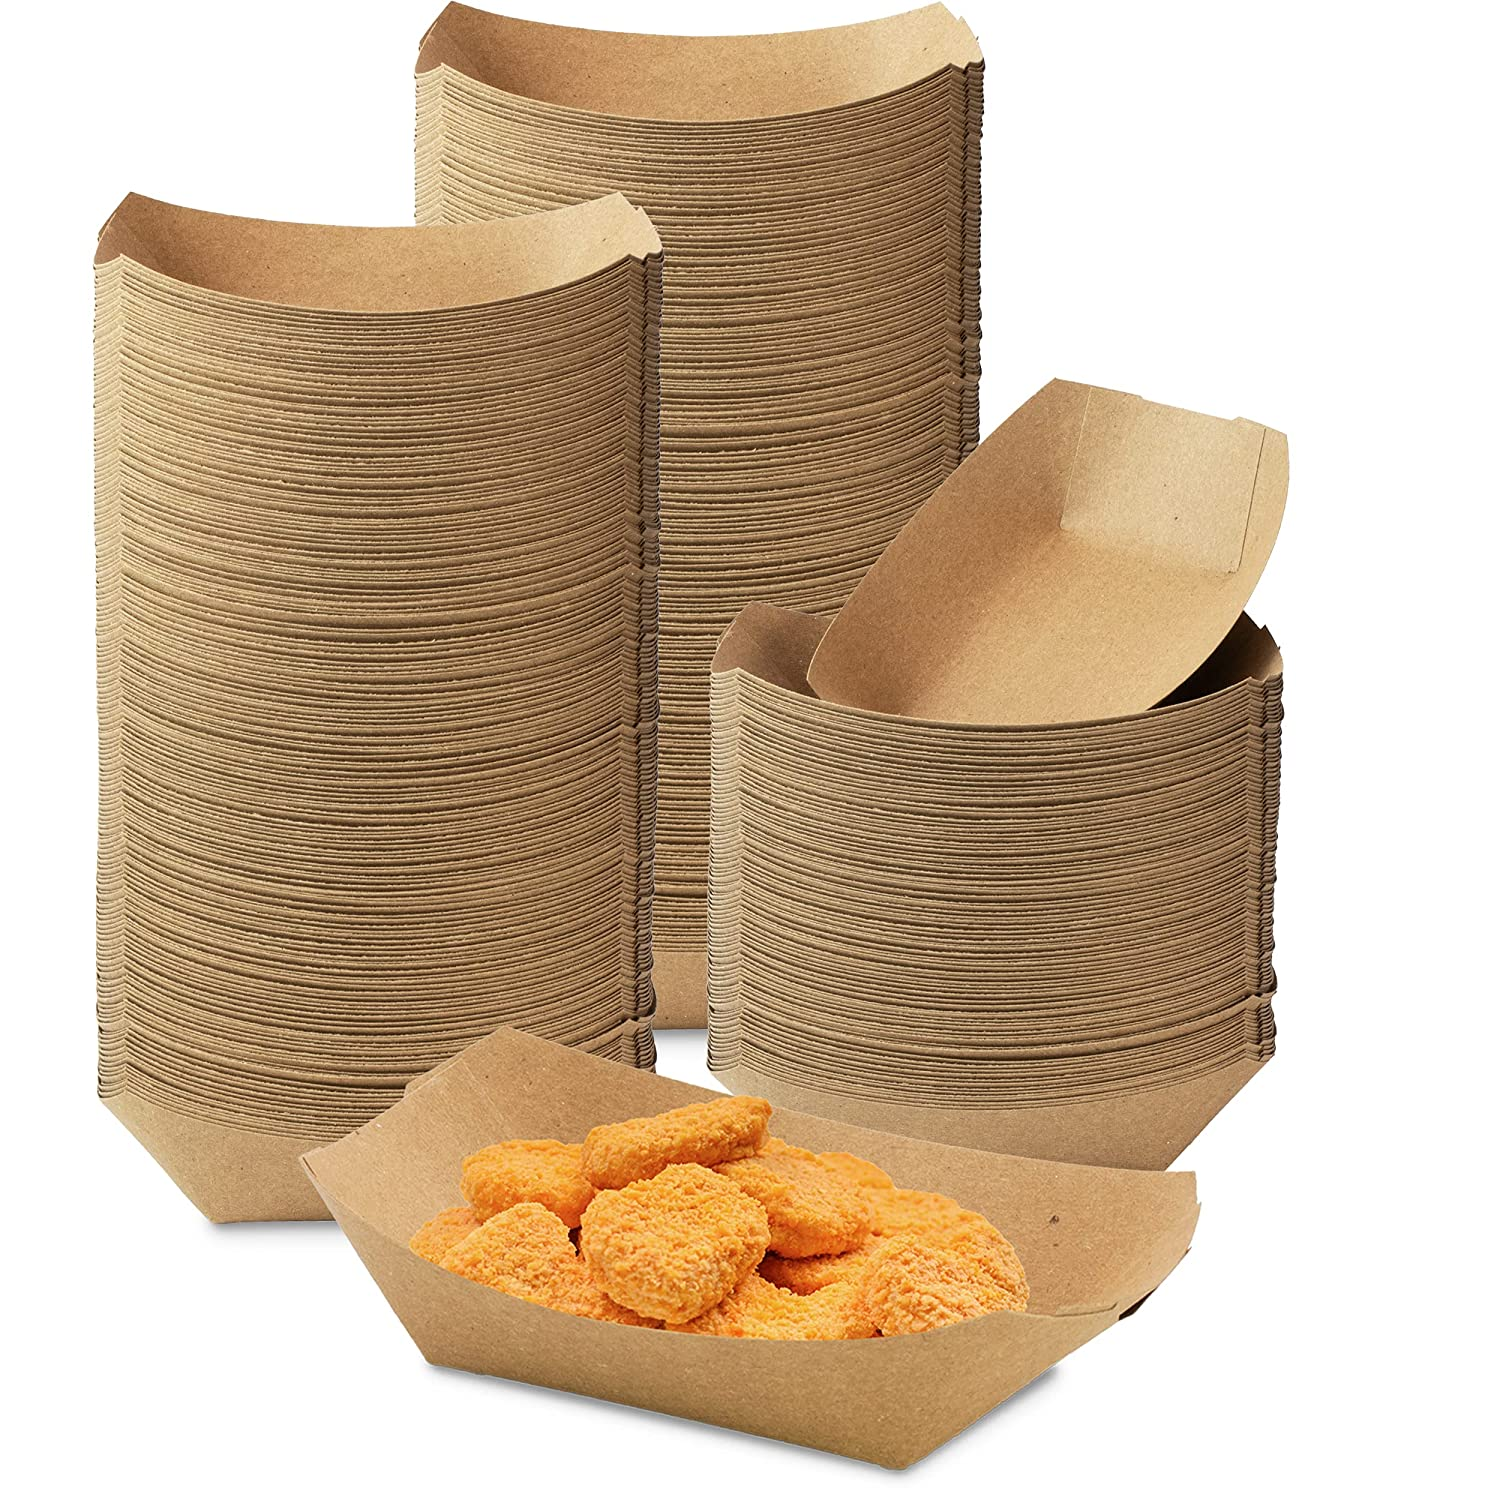 [1000 Pack] 0.50 lb Heavy Duty Disposable Kraft Brown Paper Food Trays Grease Resistant Fast Food Paperboard Boat Basket for Parties Fairs Picnics Carnivals, Holds Tacos Nachos Fries Hot Corn Dogs